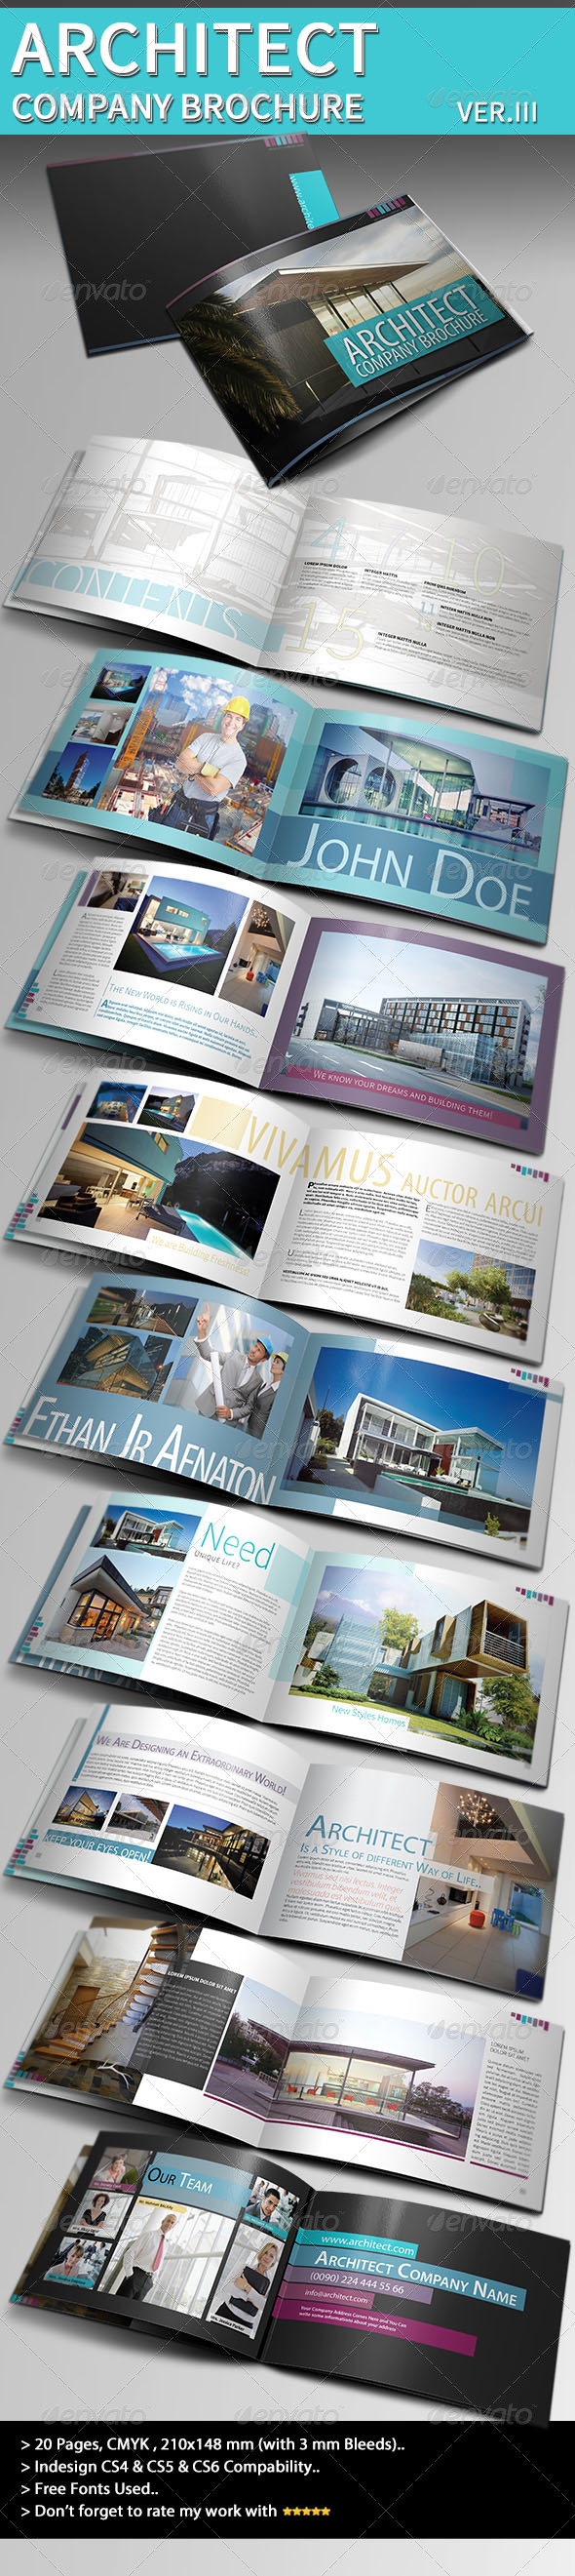 Architecture Brochure Template Veriii By Balkay Graphicriver